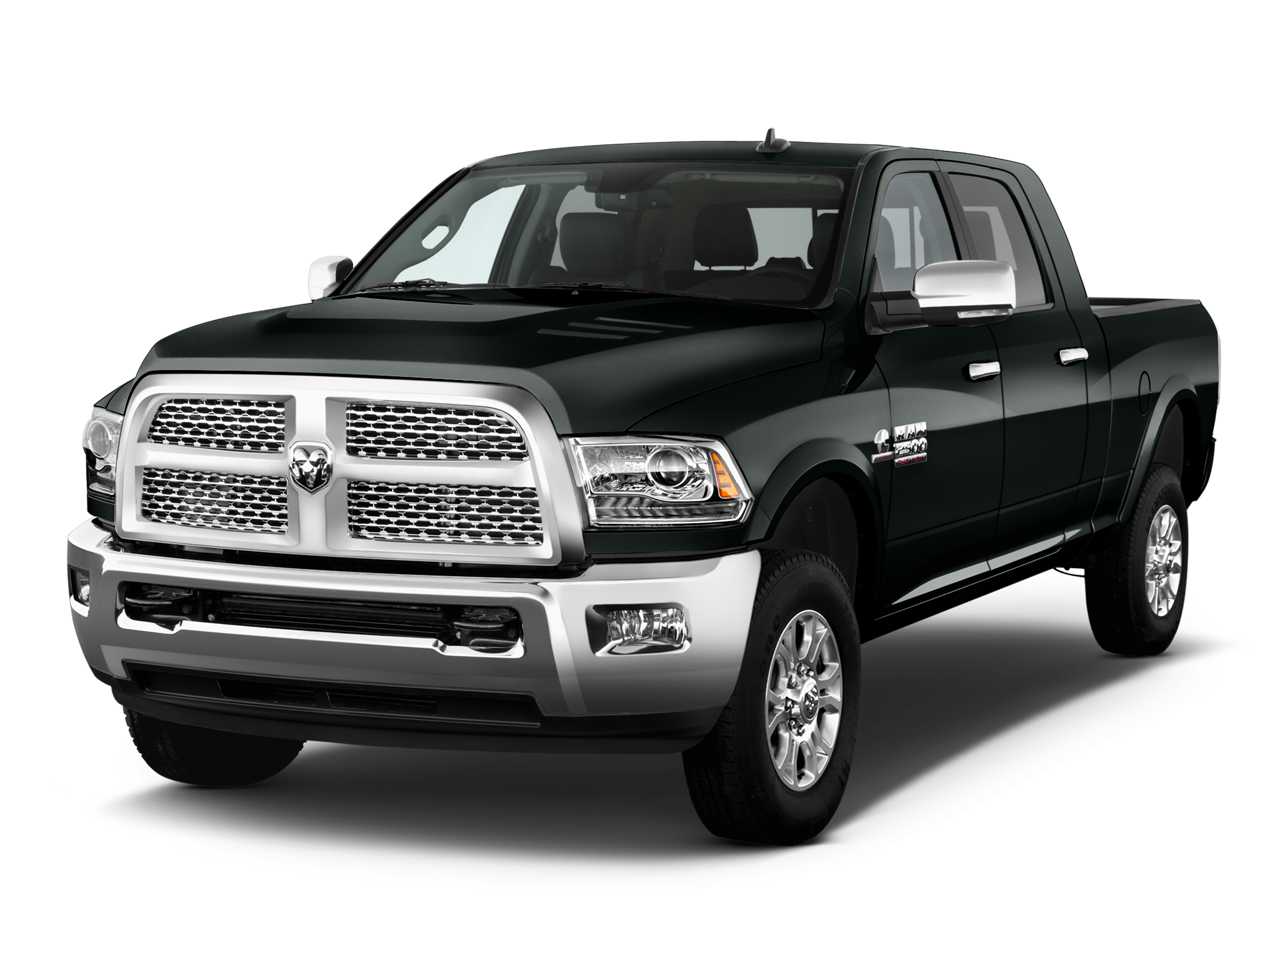 new 2017 ram 2500 laramie mega cab near oklahoma city ok david stanley dodge. Black Bedroom Furniture Sets. Home Design Ideas